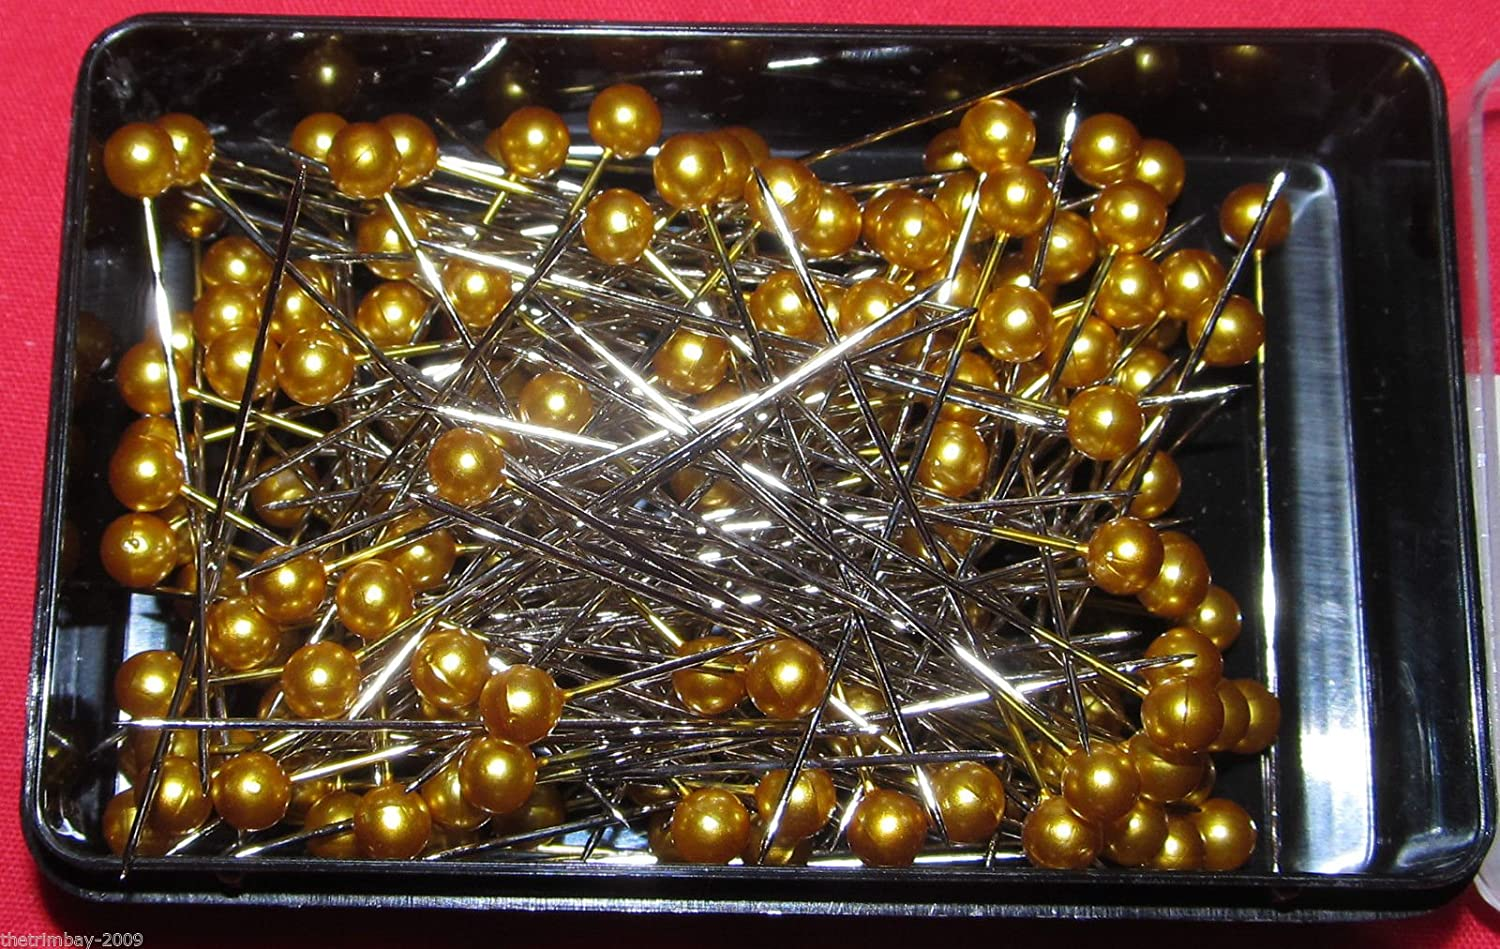 144 Dressmaking Craft Pearl Headed Pins-£1.90 Box- Gold